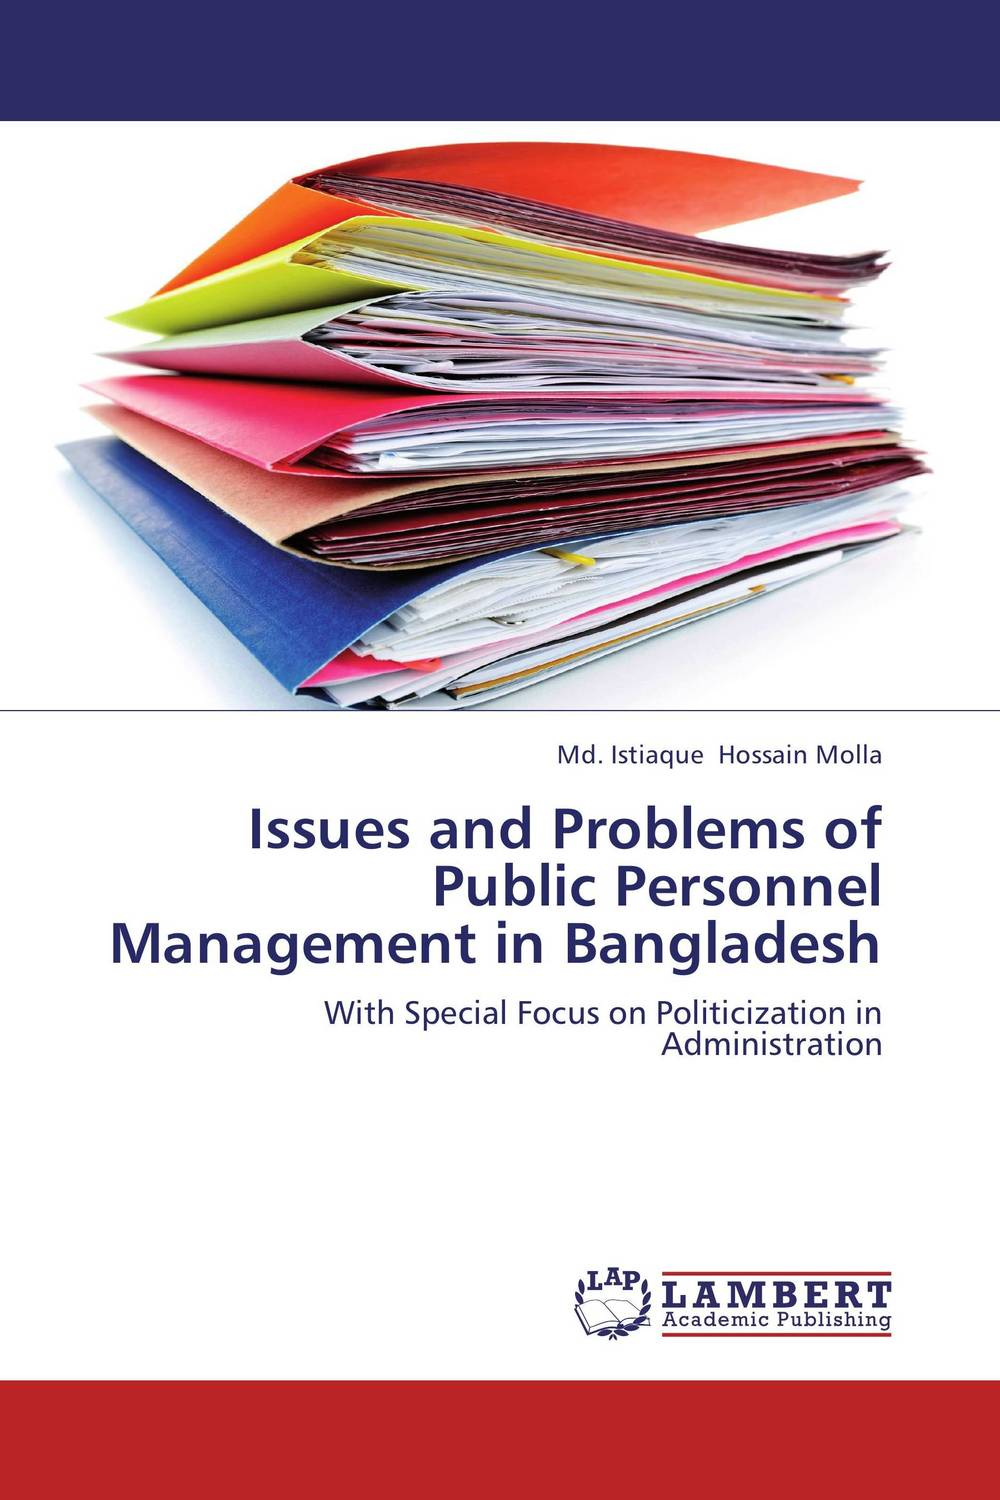 Issues and Problems of Public Personnel Management in Bangladesh керамогранит atlas concorde россия privilege miele 60x60